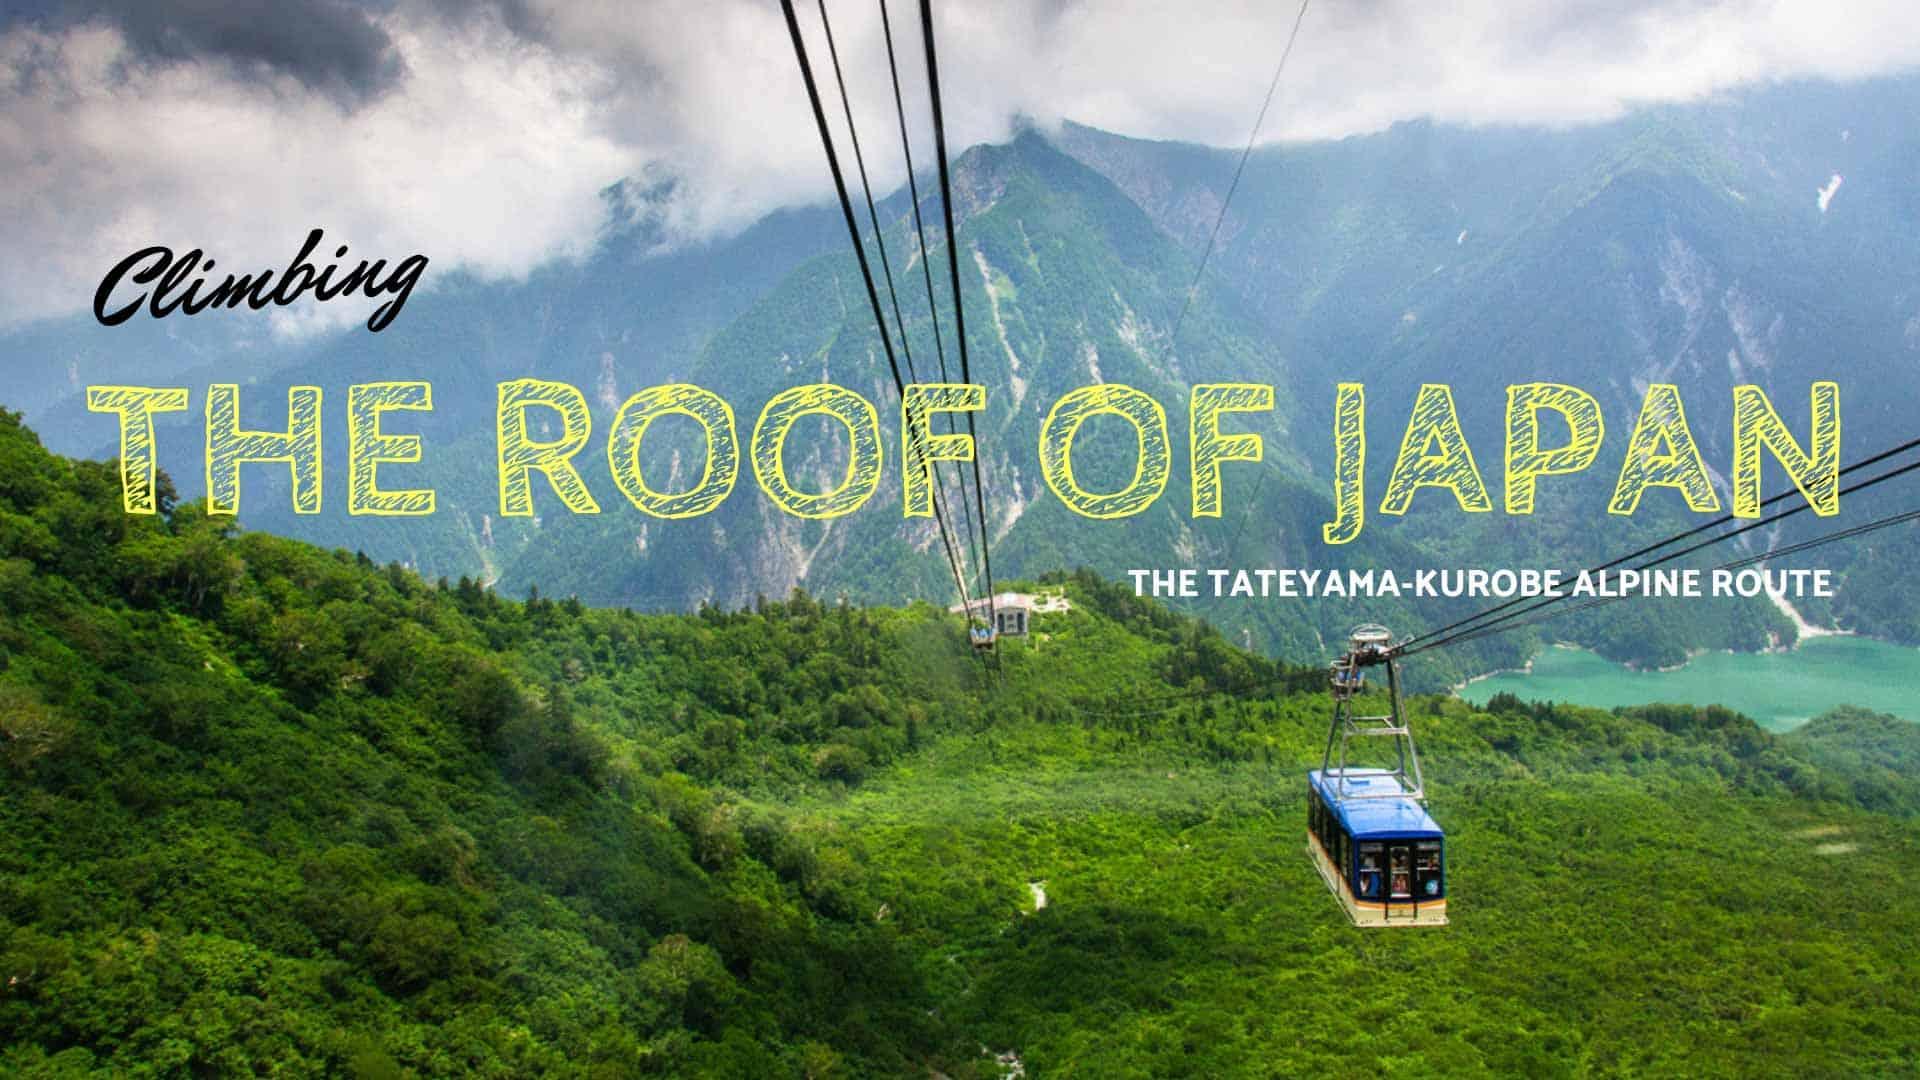 Climbing The Roof Of Japan – The Ultimate Guide To Tateyama Kurobe Alpine Route